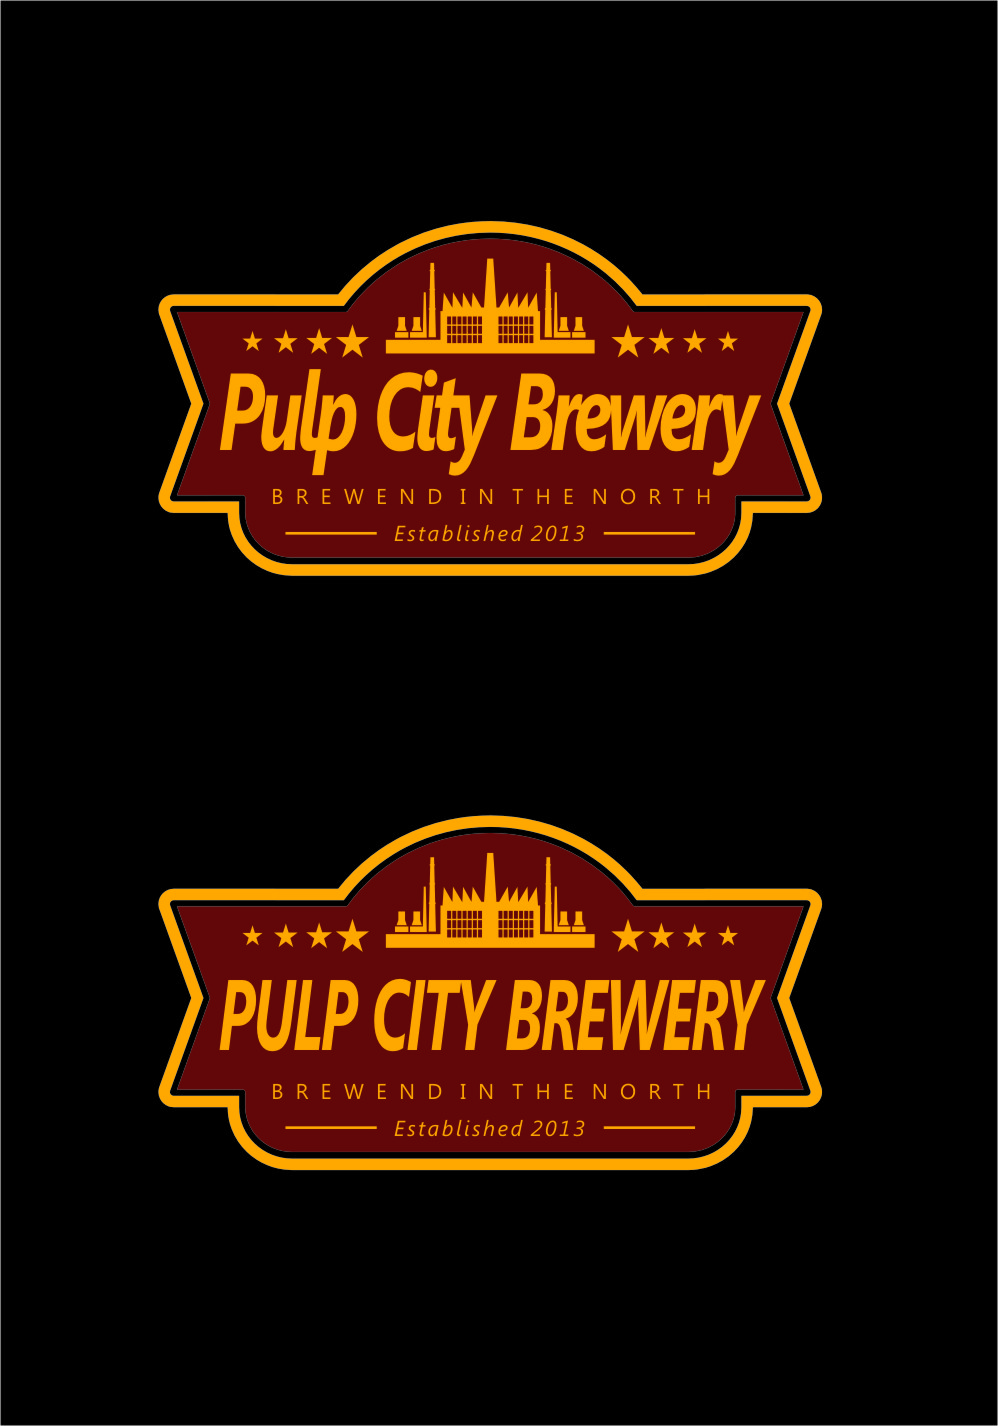 Logo Design by Ngepet_art - Entry No. 75 in the Logo Design Contest Artistic Logo Design for Pulp City Brewery.